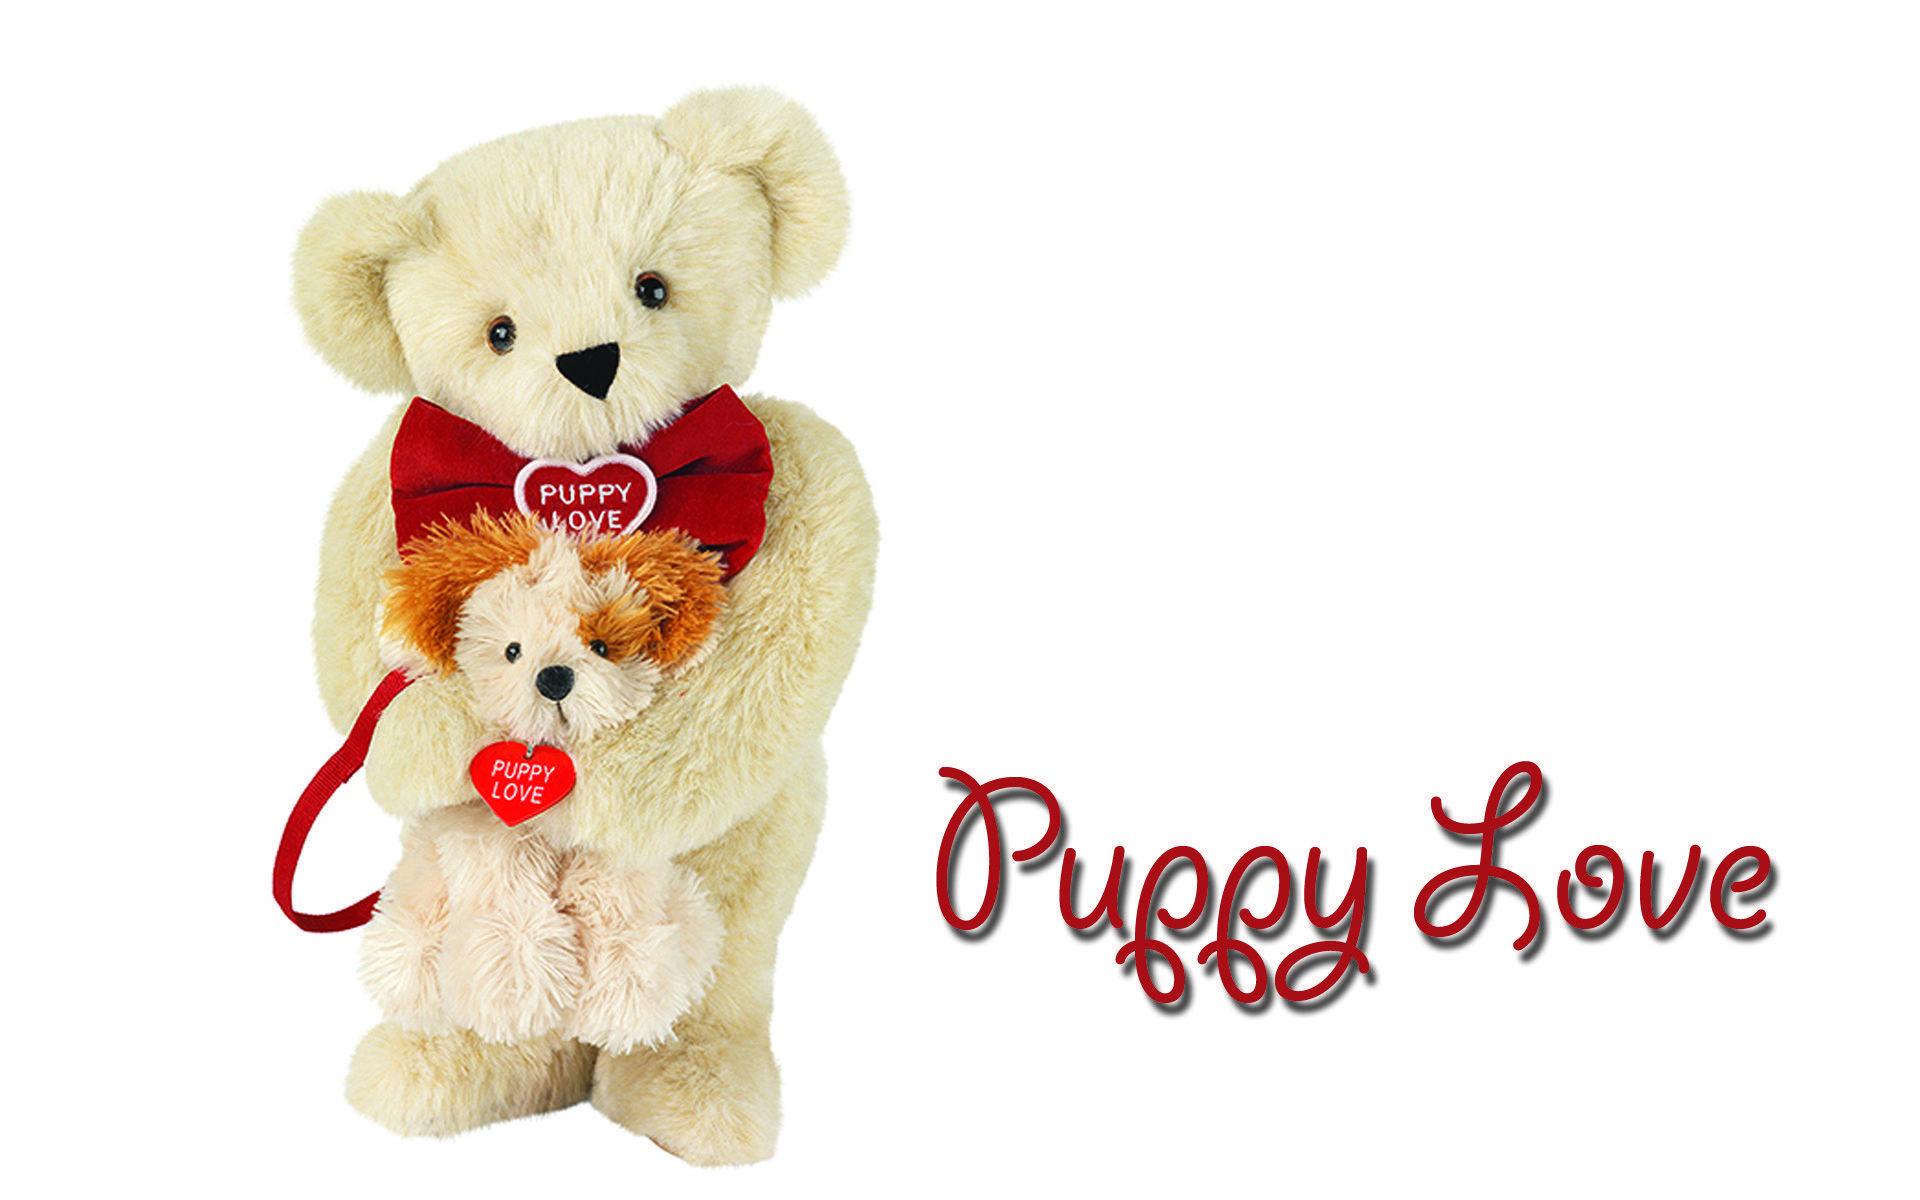 Cute Puppy Wishes Happy Teddy Bear Day wallpapers | Teddy Bear in ...